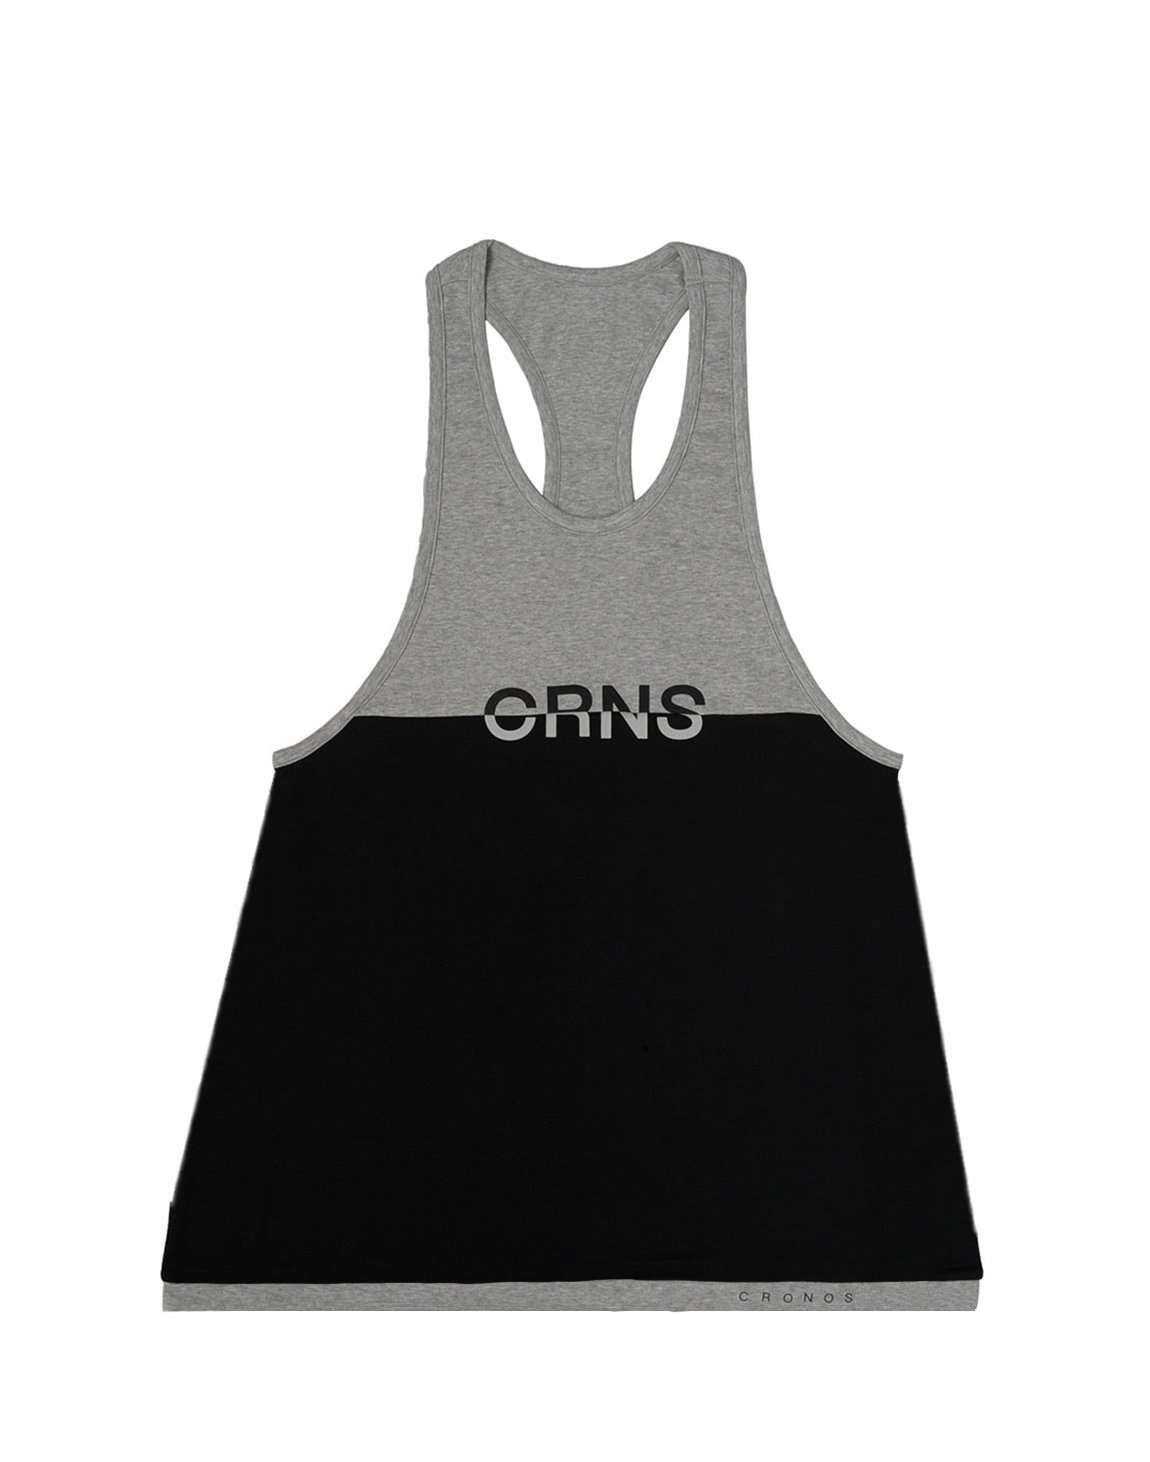 <img class='new_mark_img1' src='https://img.shop-pro.jp/img/new/icons55.gif' style='border:none;display:inline;margin:0px;padding:0px;width:auto;' />CRNS Bi-COLOR TANK TOP【BLACK×GRAY】